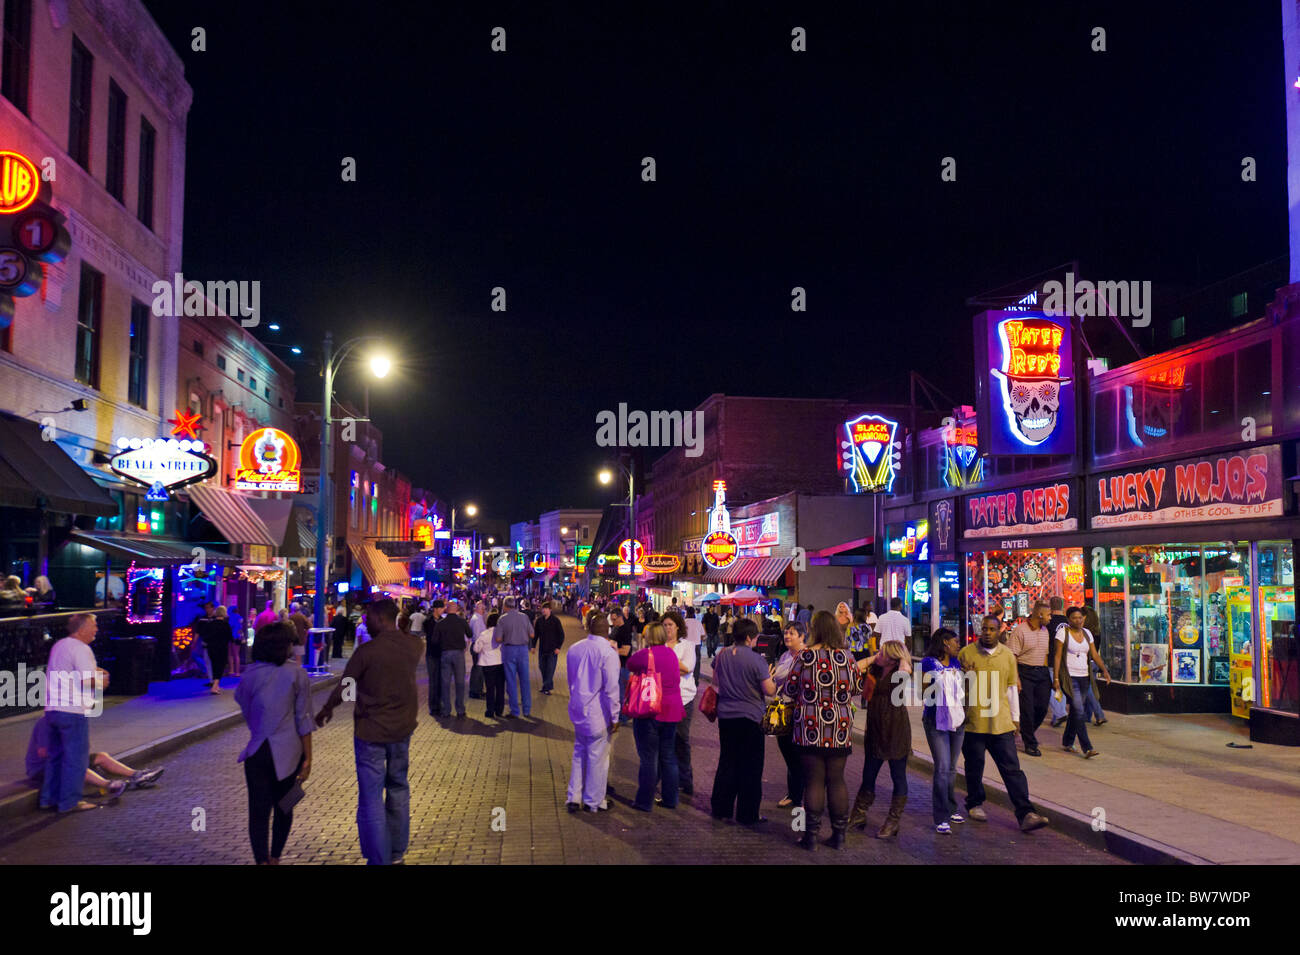 Beale Street at night, Memphis, Tennessee, USA - Stock Image